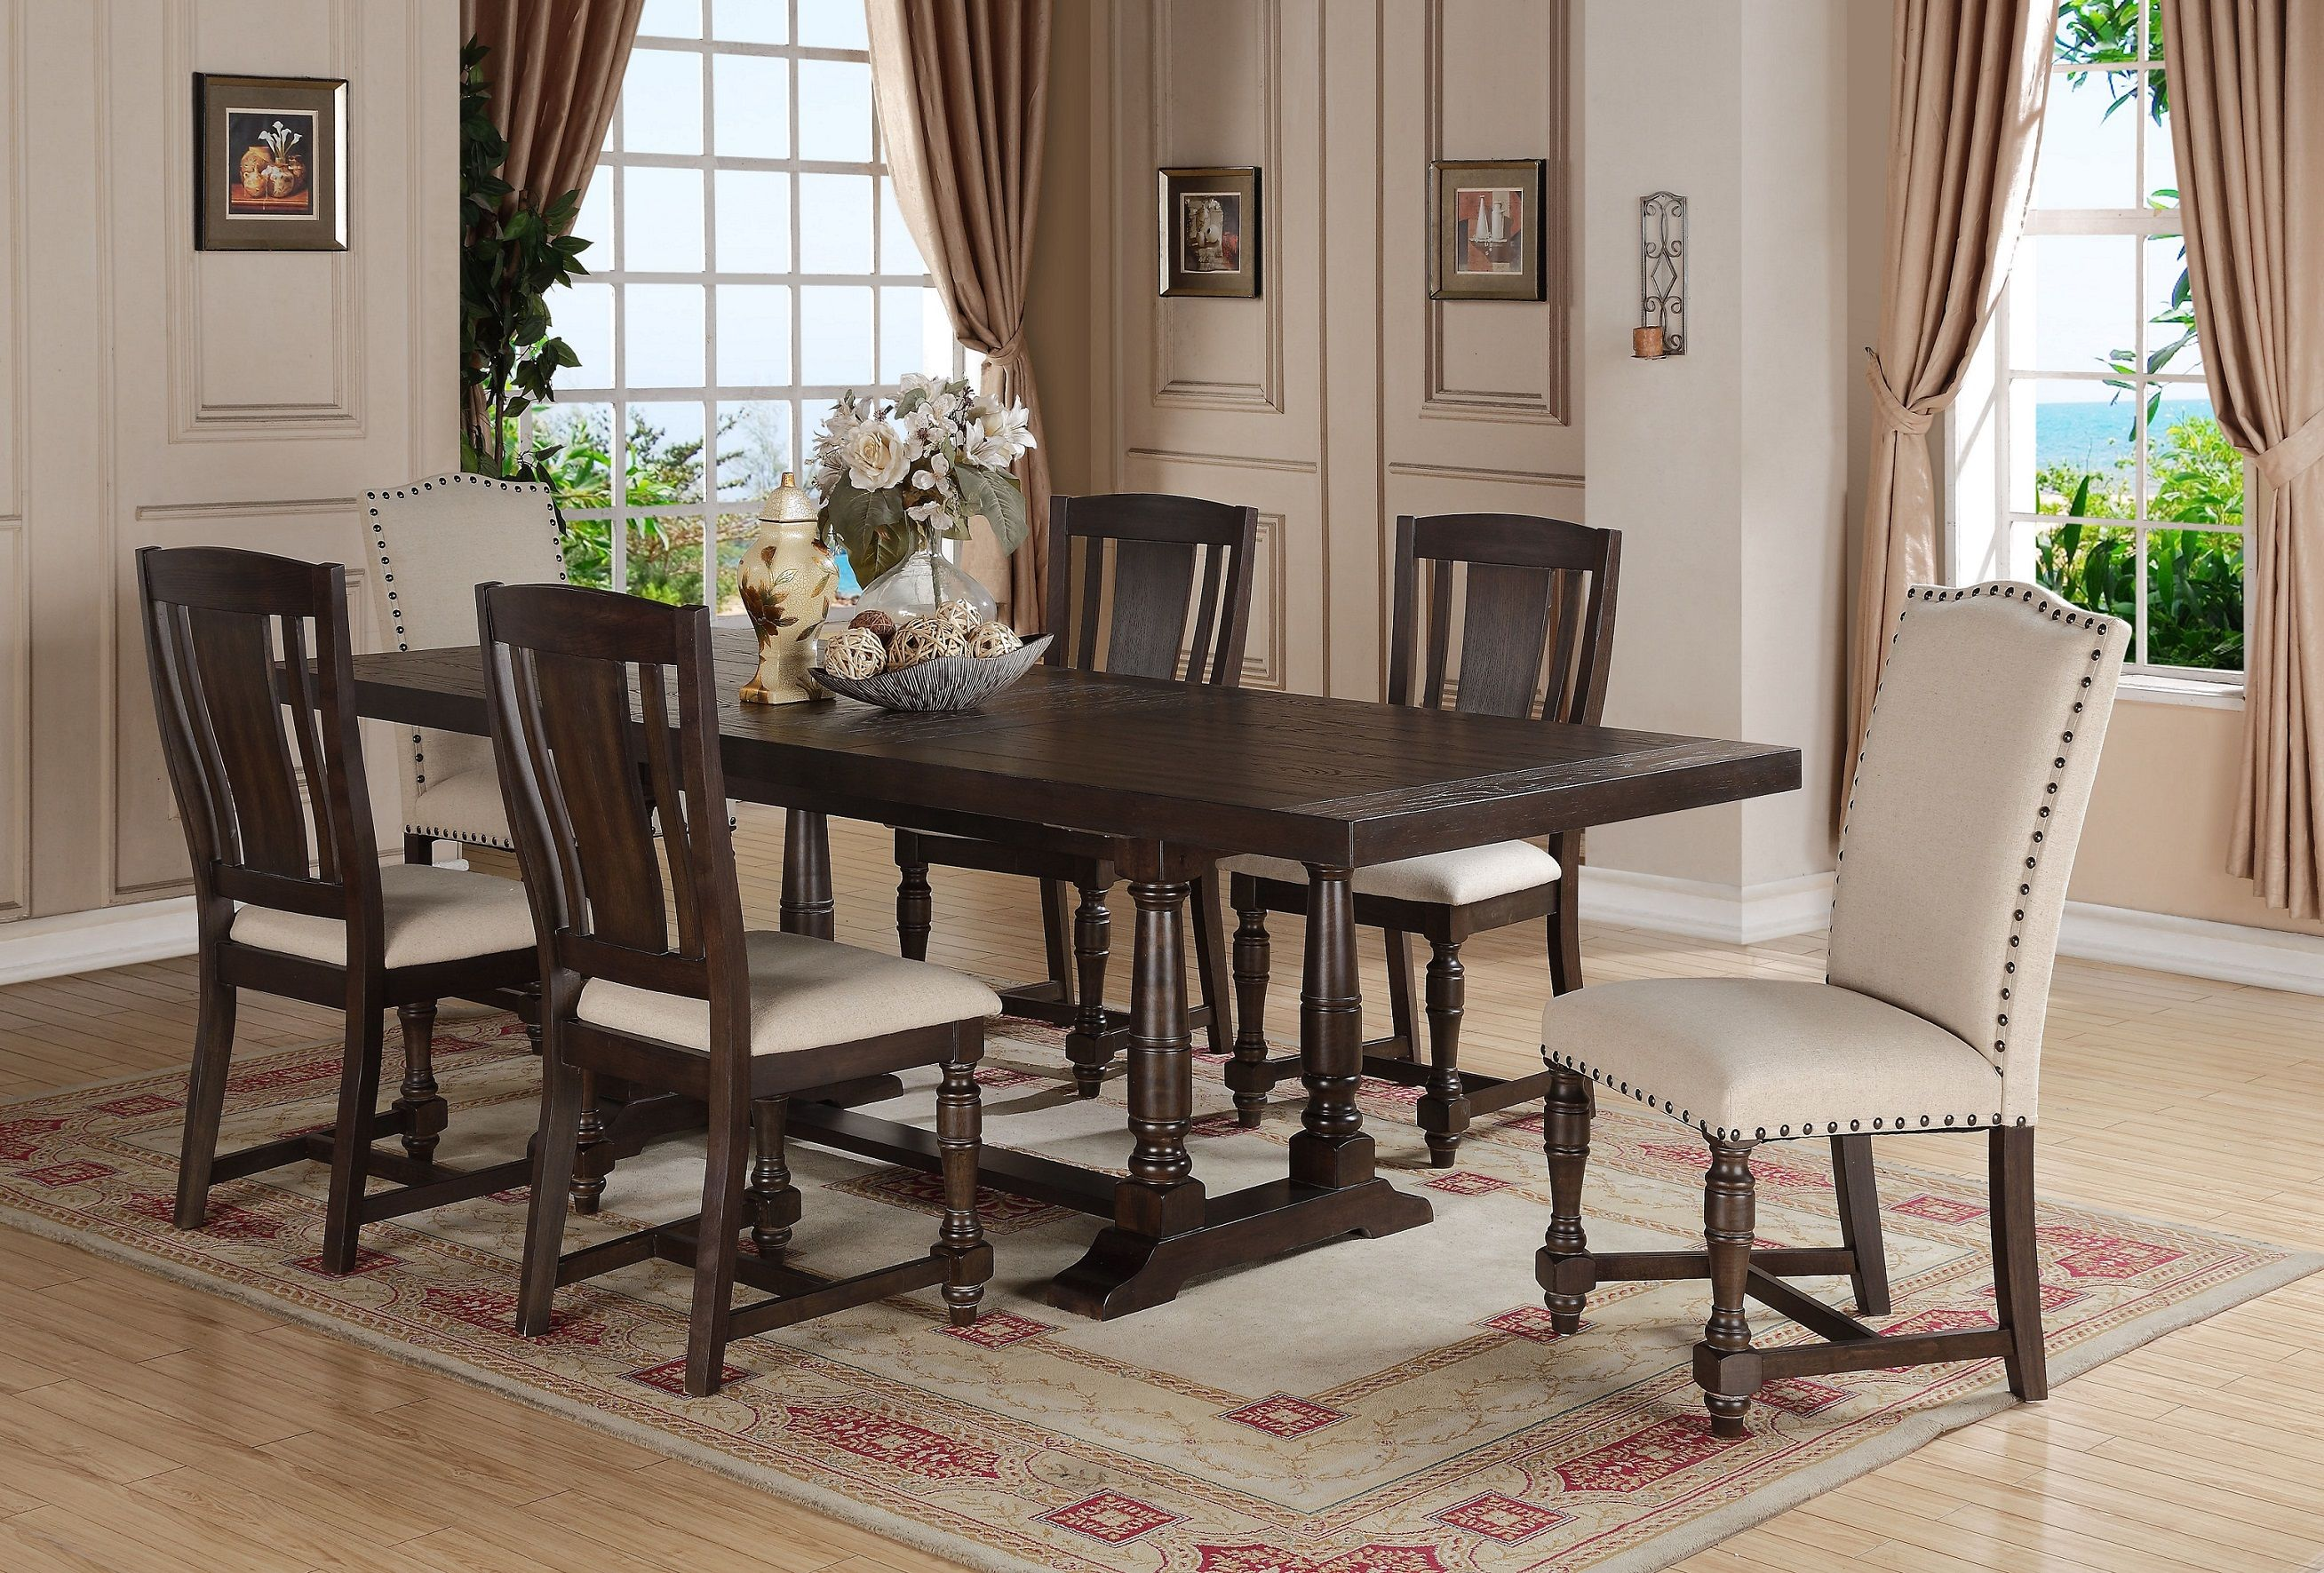 Xcalibur Trestle Table DX14296 Dining